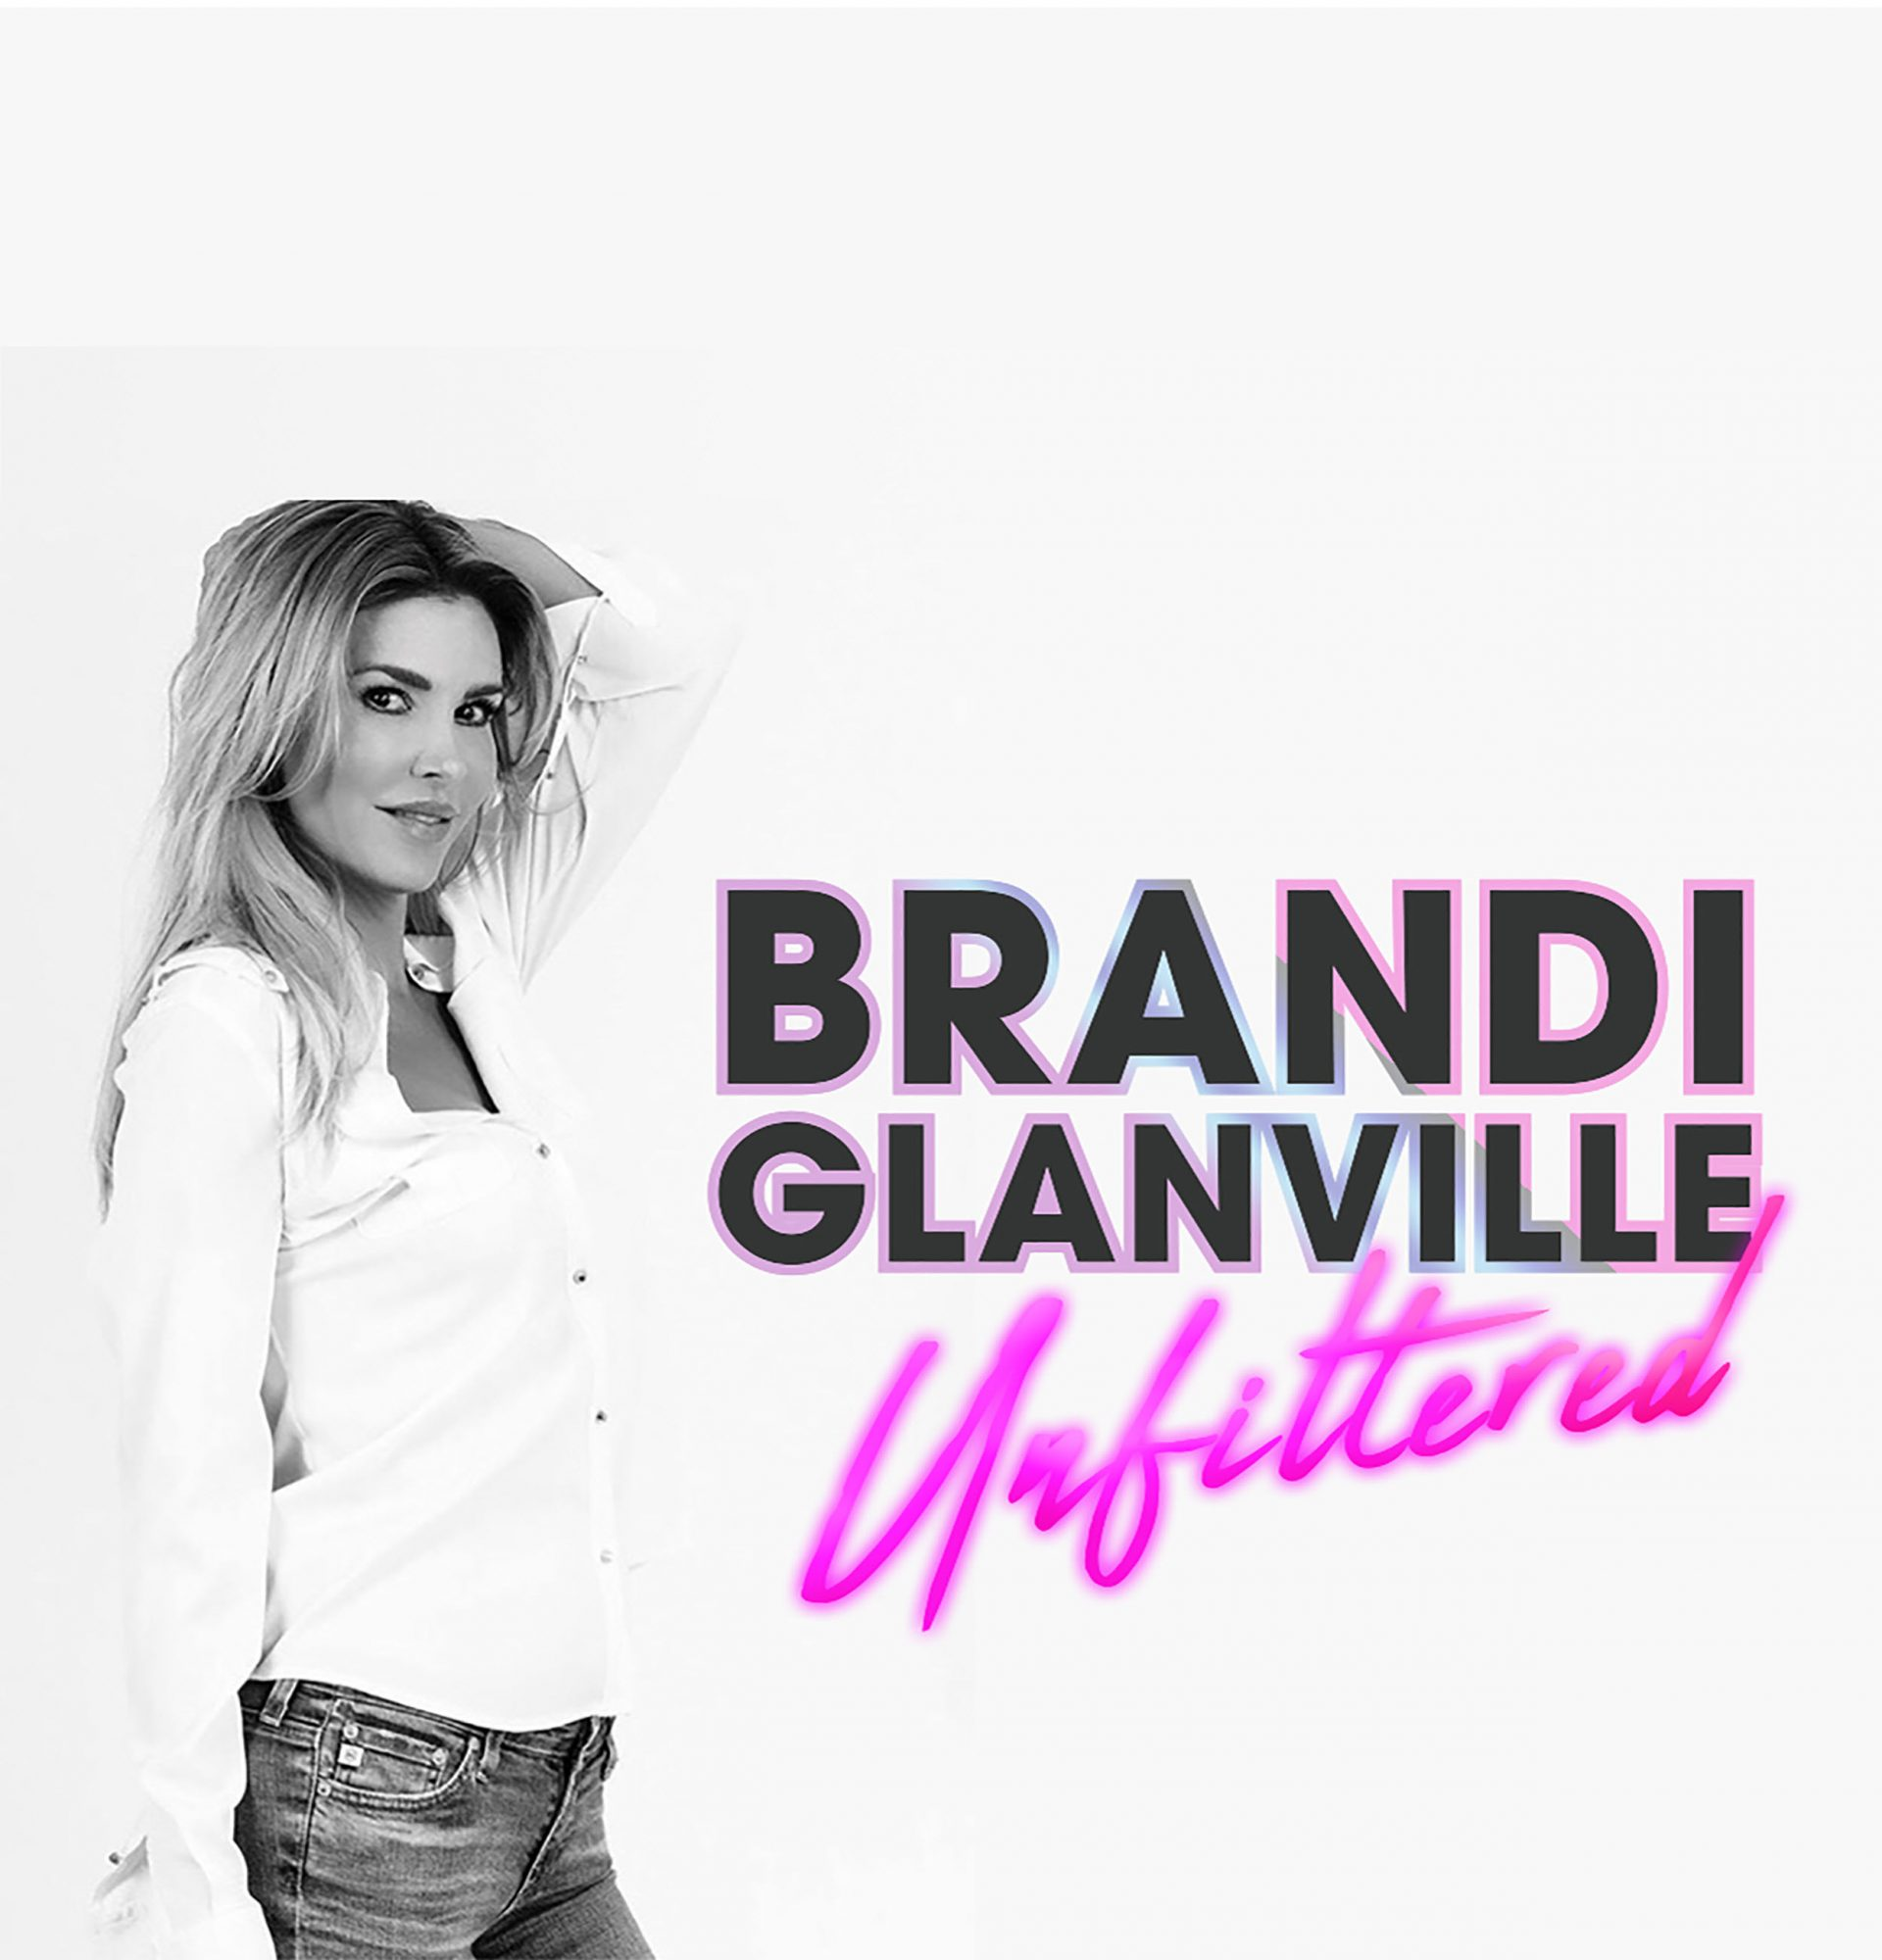 Brandi Glanville, The Real Housewives of Beverly Hills